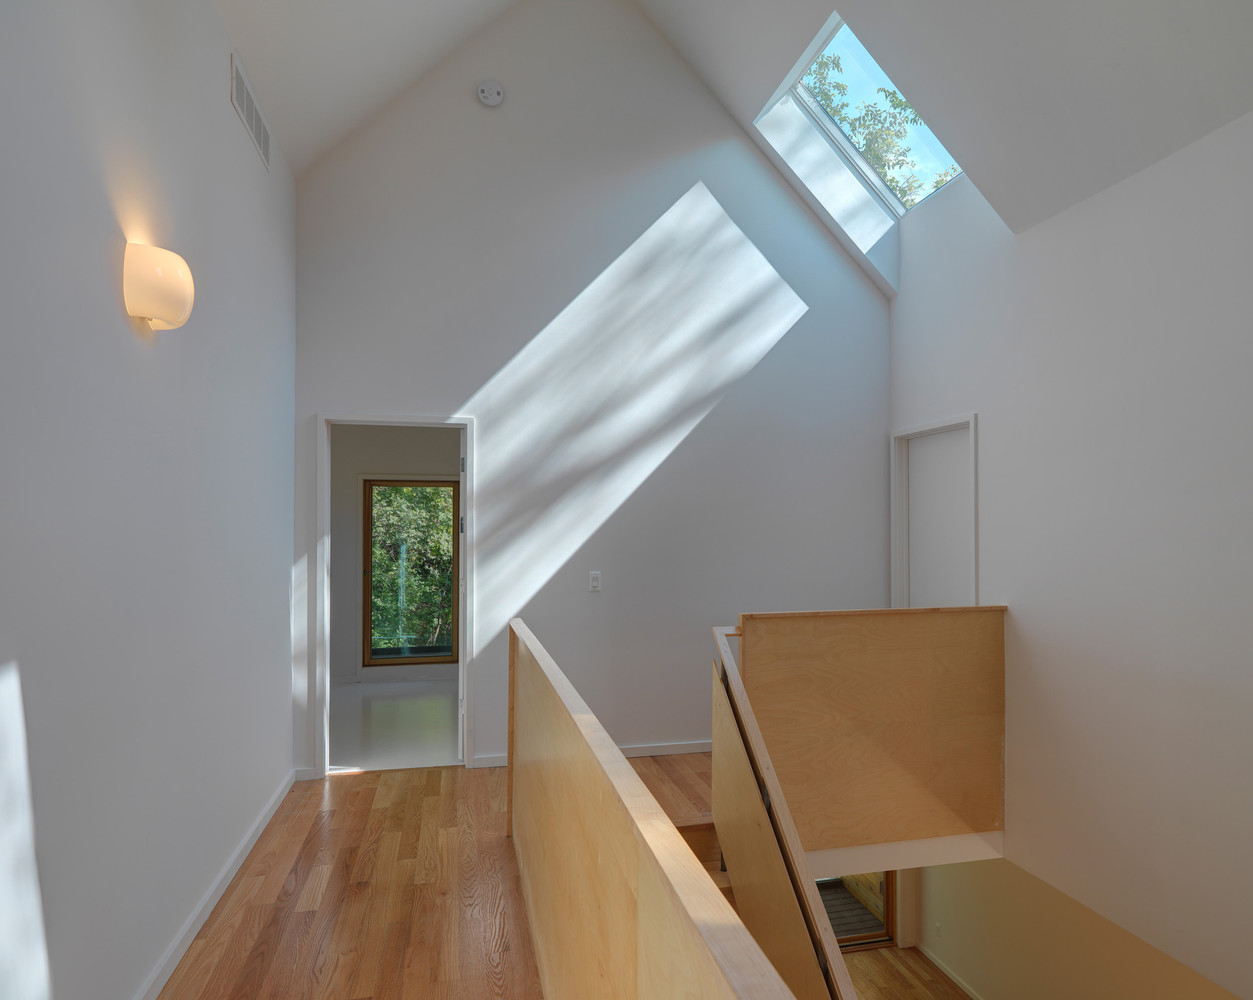 Gallery of the matchbox house bureau for architecture and urbanism